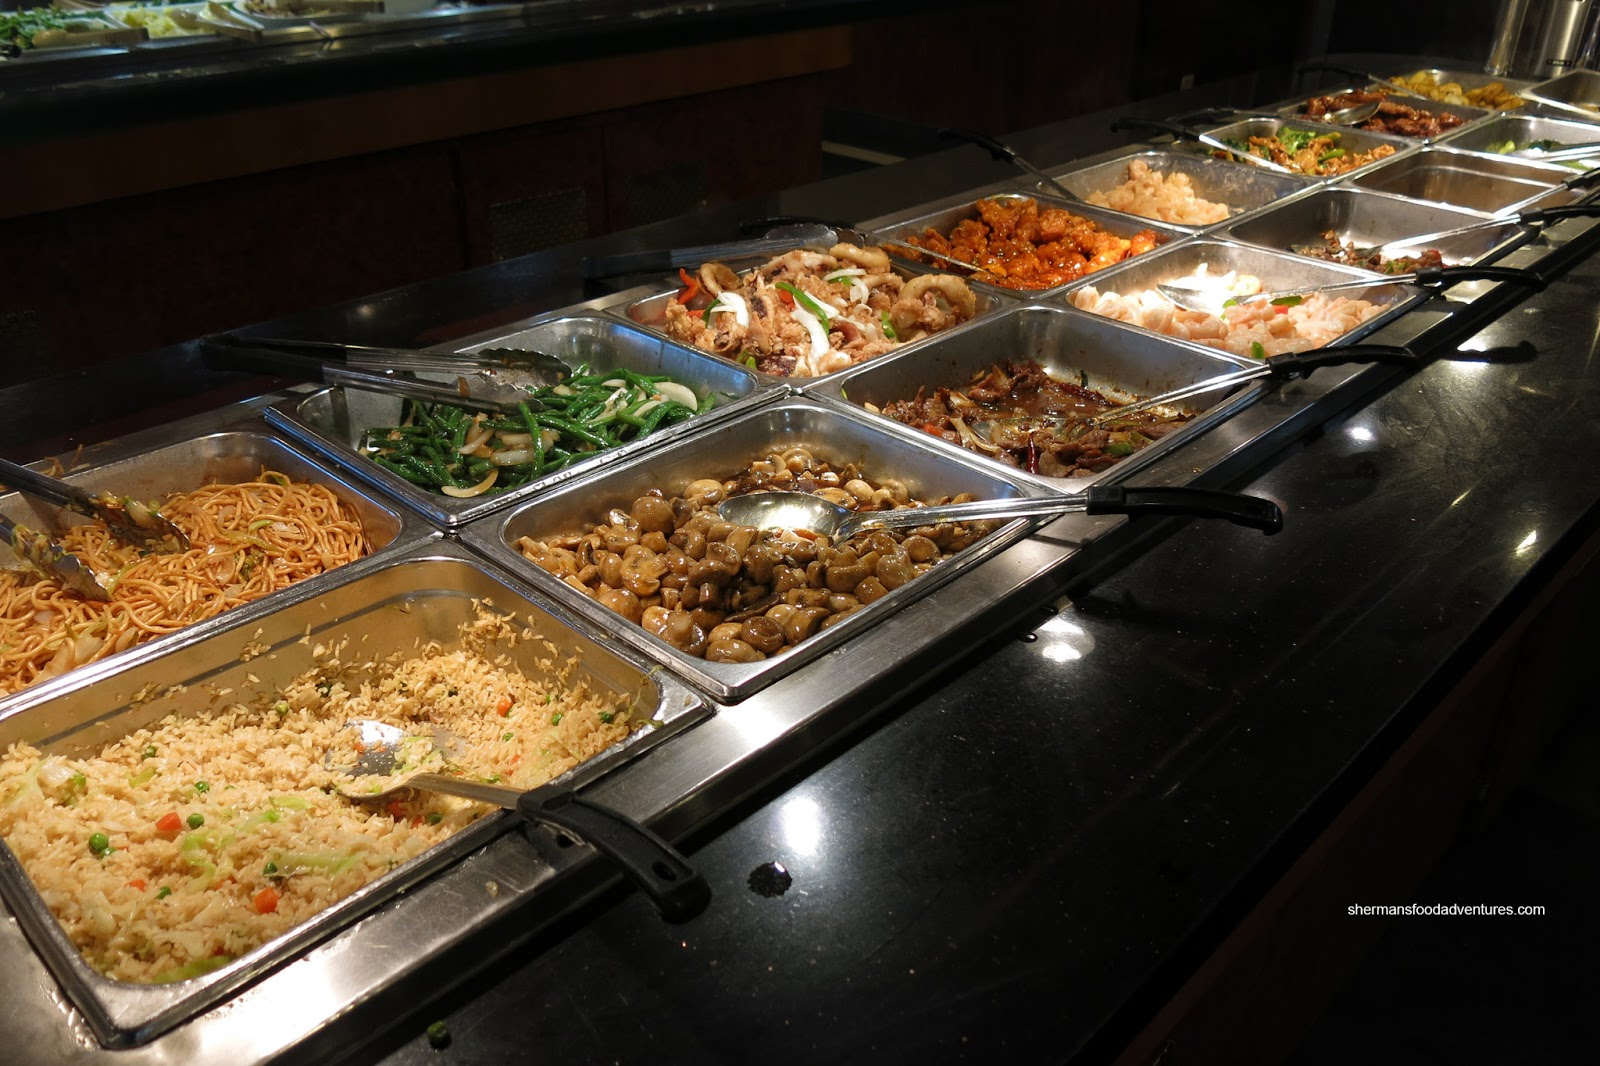 Sherman 39 s food adventures wonderful buffet for Asian cuisine buffet